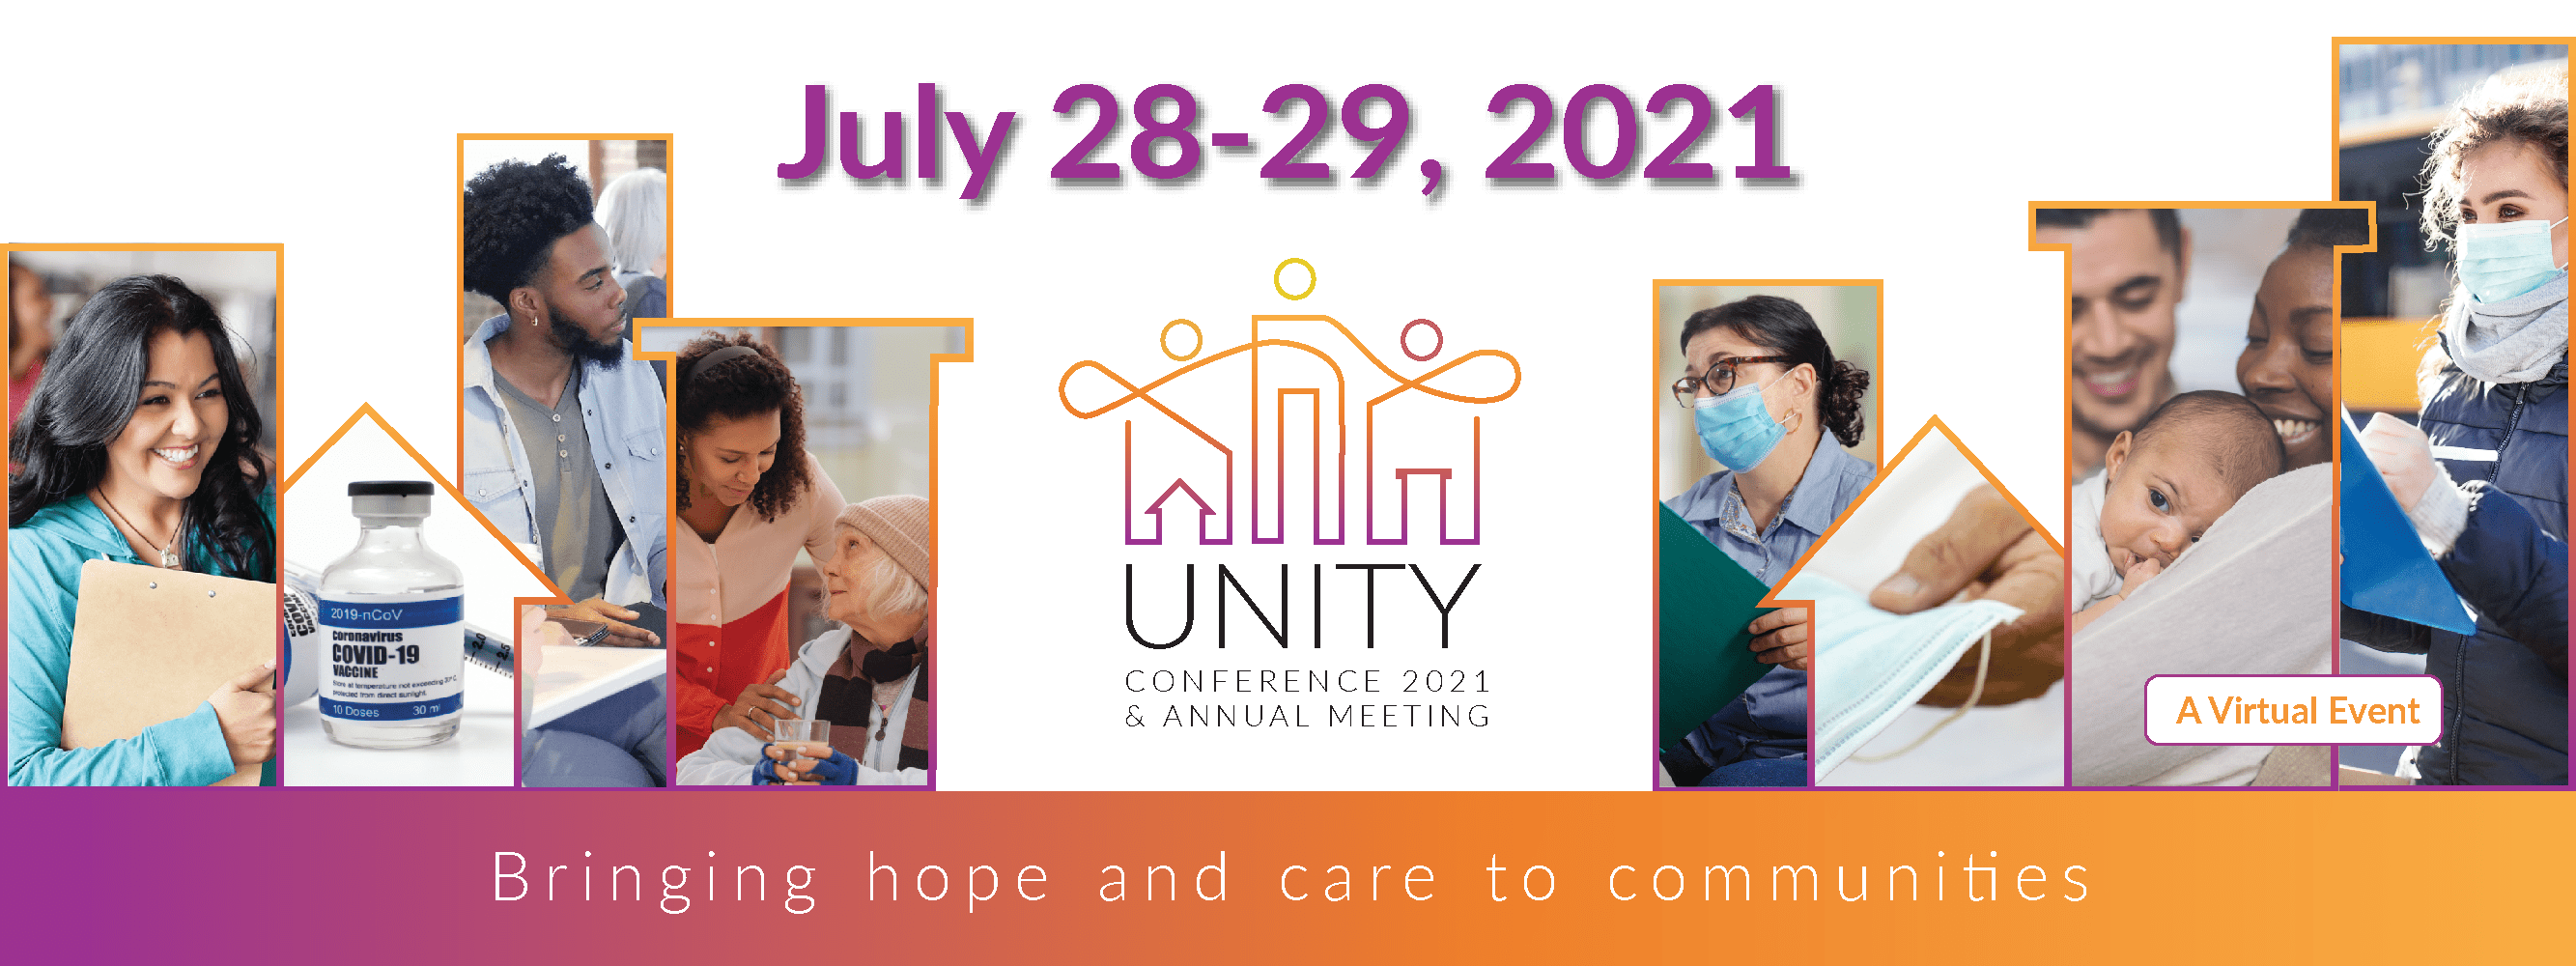 Unity Conference 2021